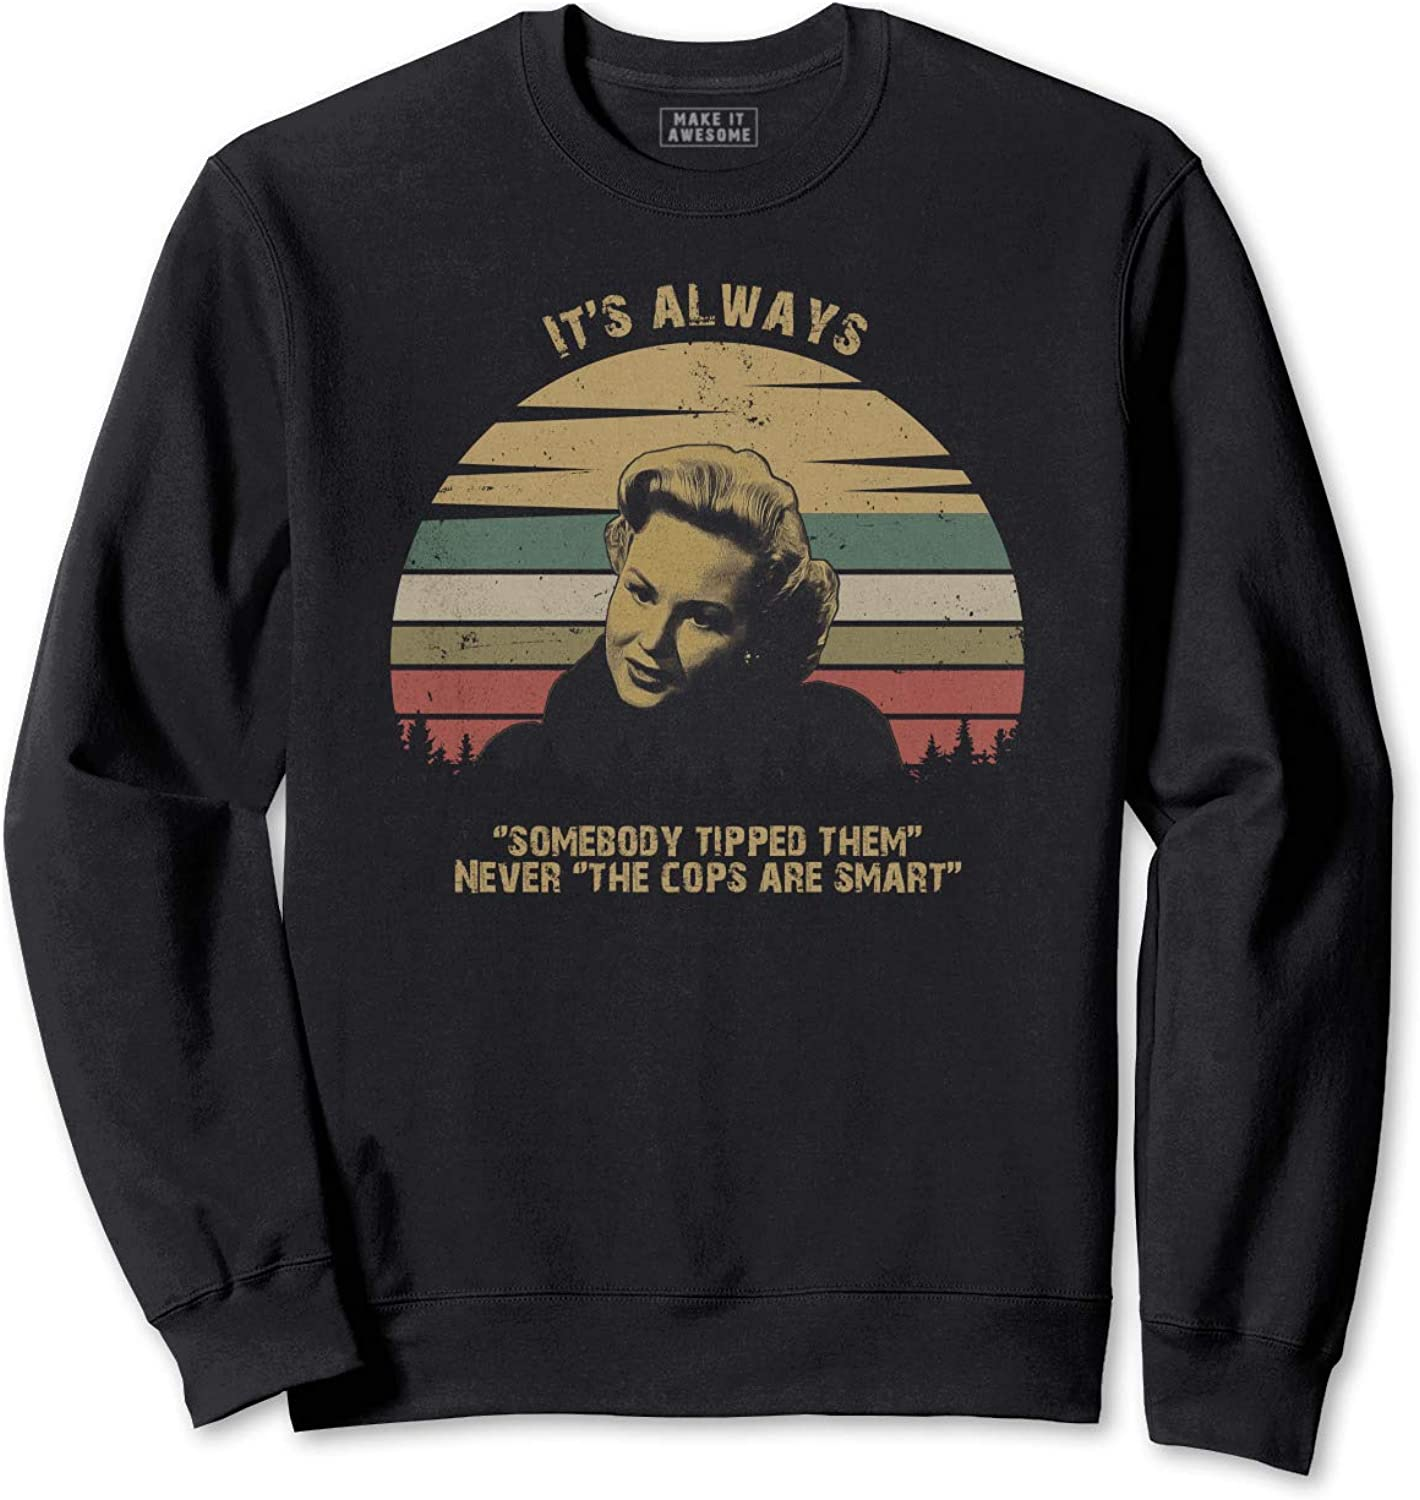 Its Always Somebody Tipped Them Never The Cops are Smart Vintage T-Shirt